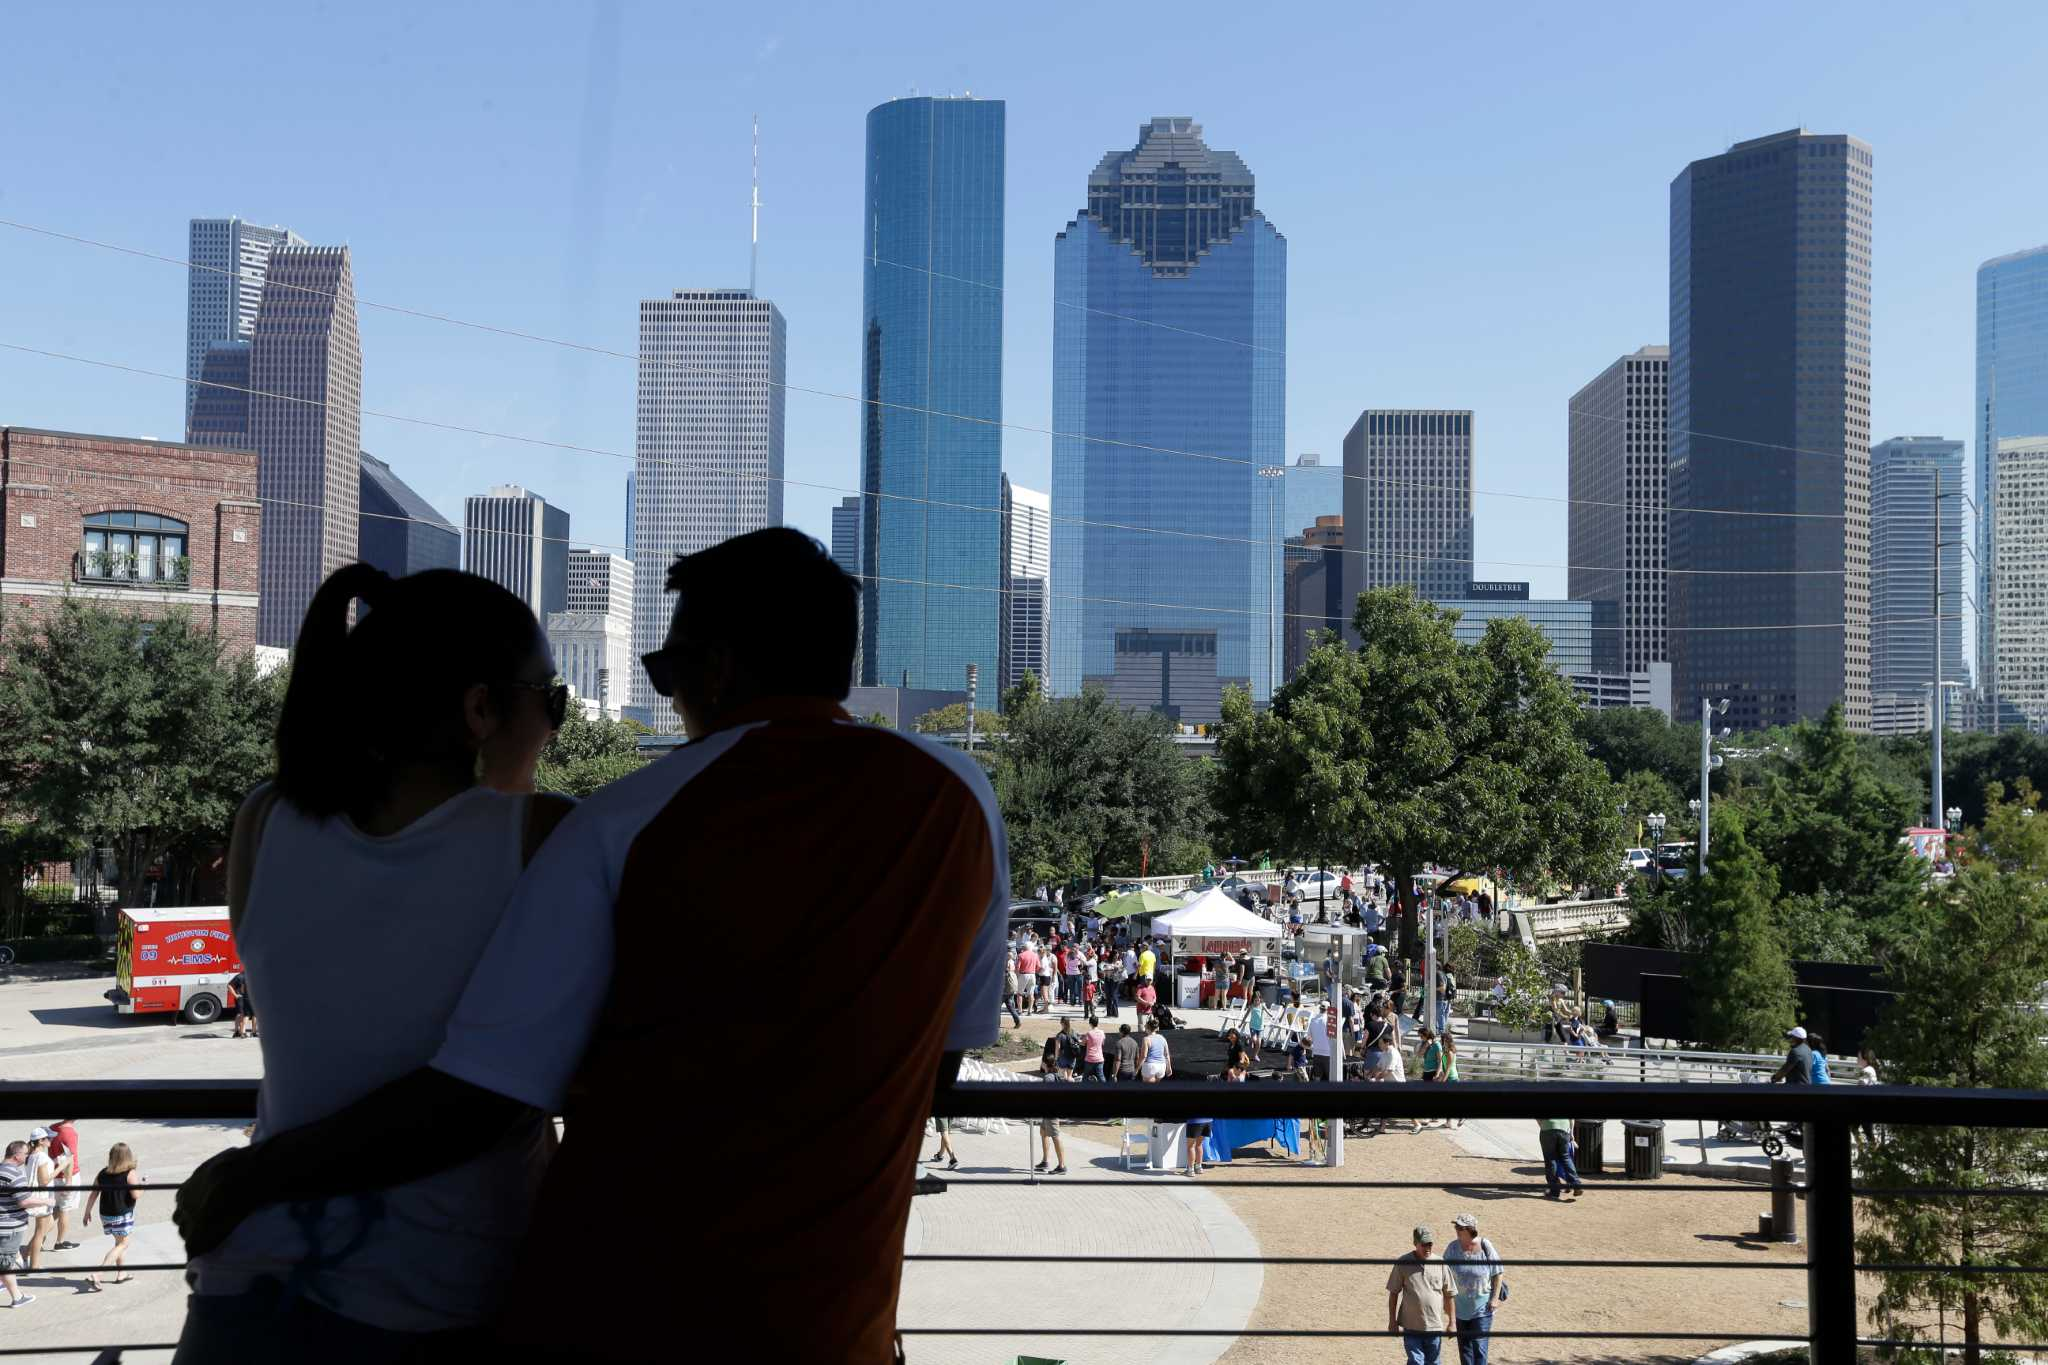 Paying off debt? Texas is the place to be, according to study ...